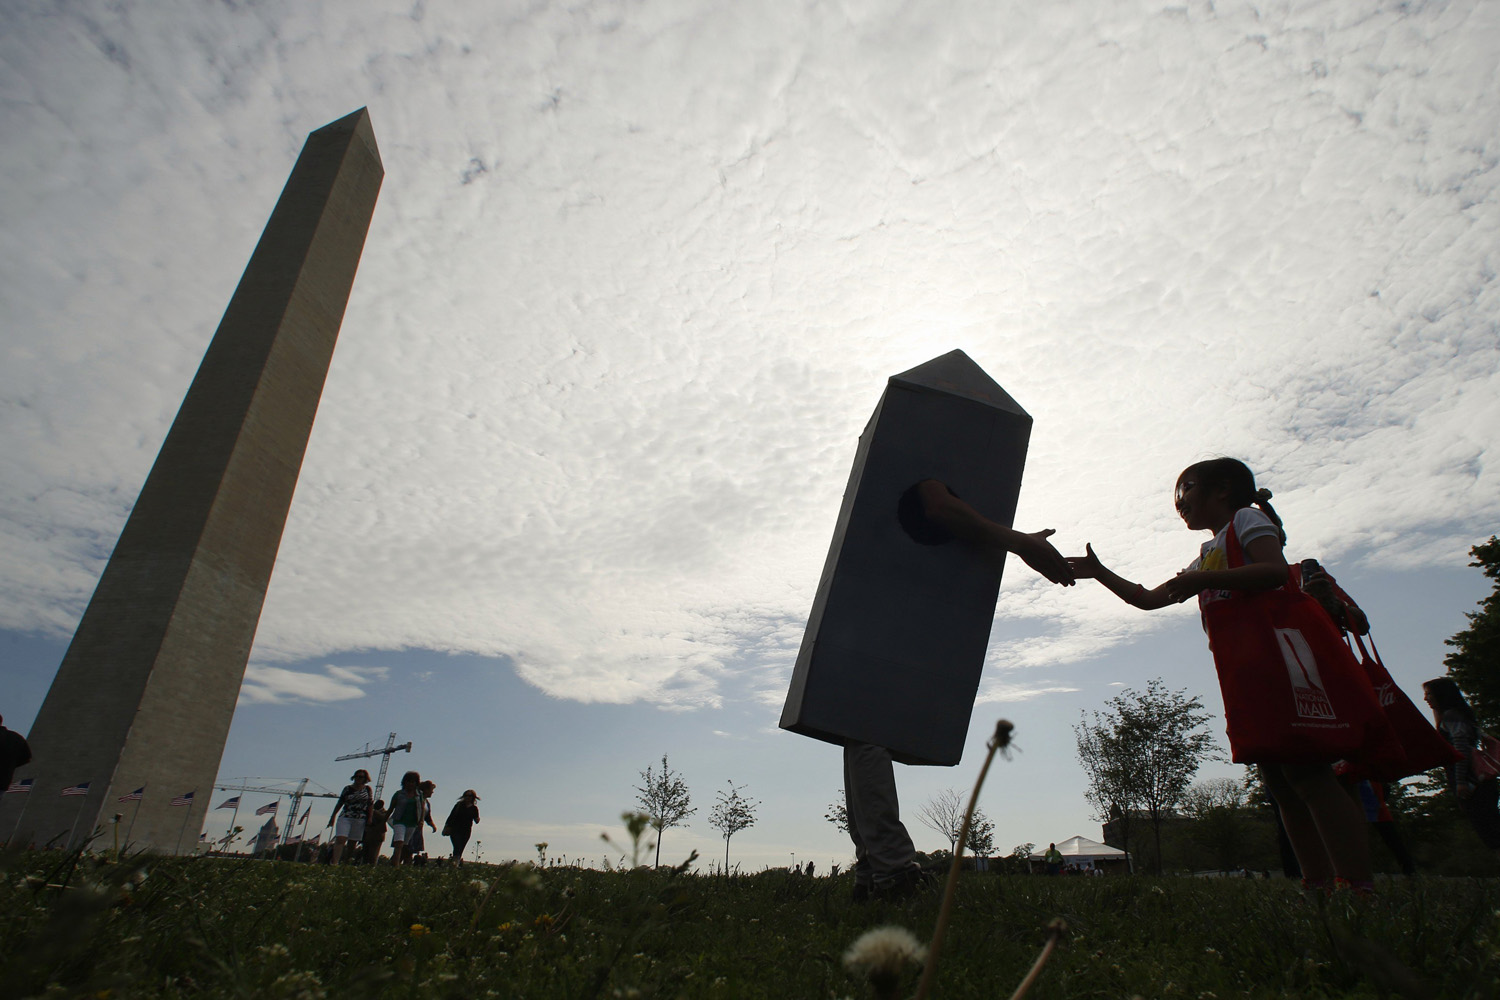 A girl shakes hands with a man dressed as the Washington Monument at the monument's re-opening ceremony in Washington, D.C., on May 12, 2014.